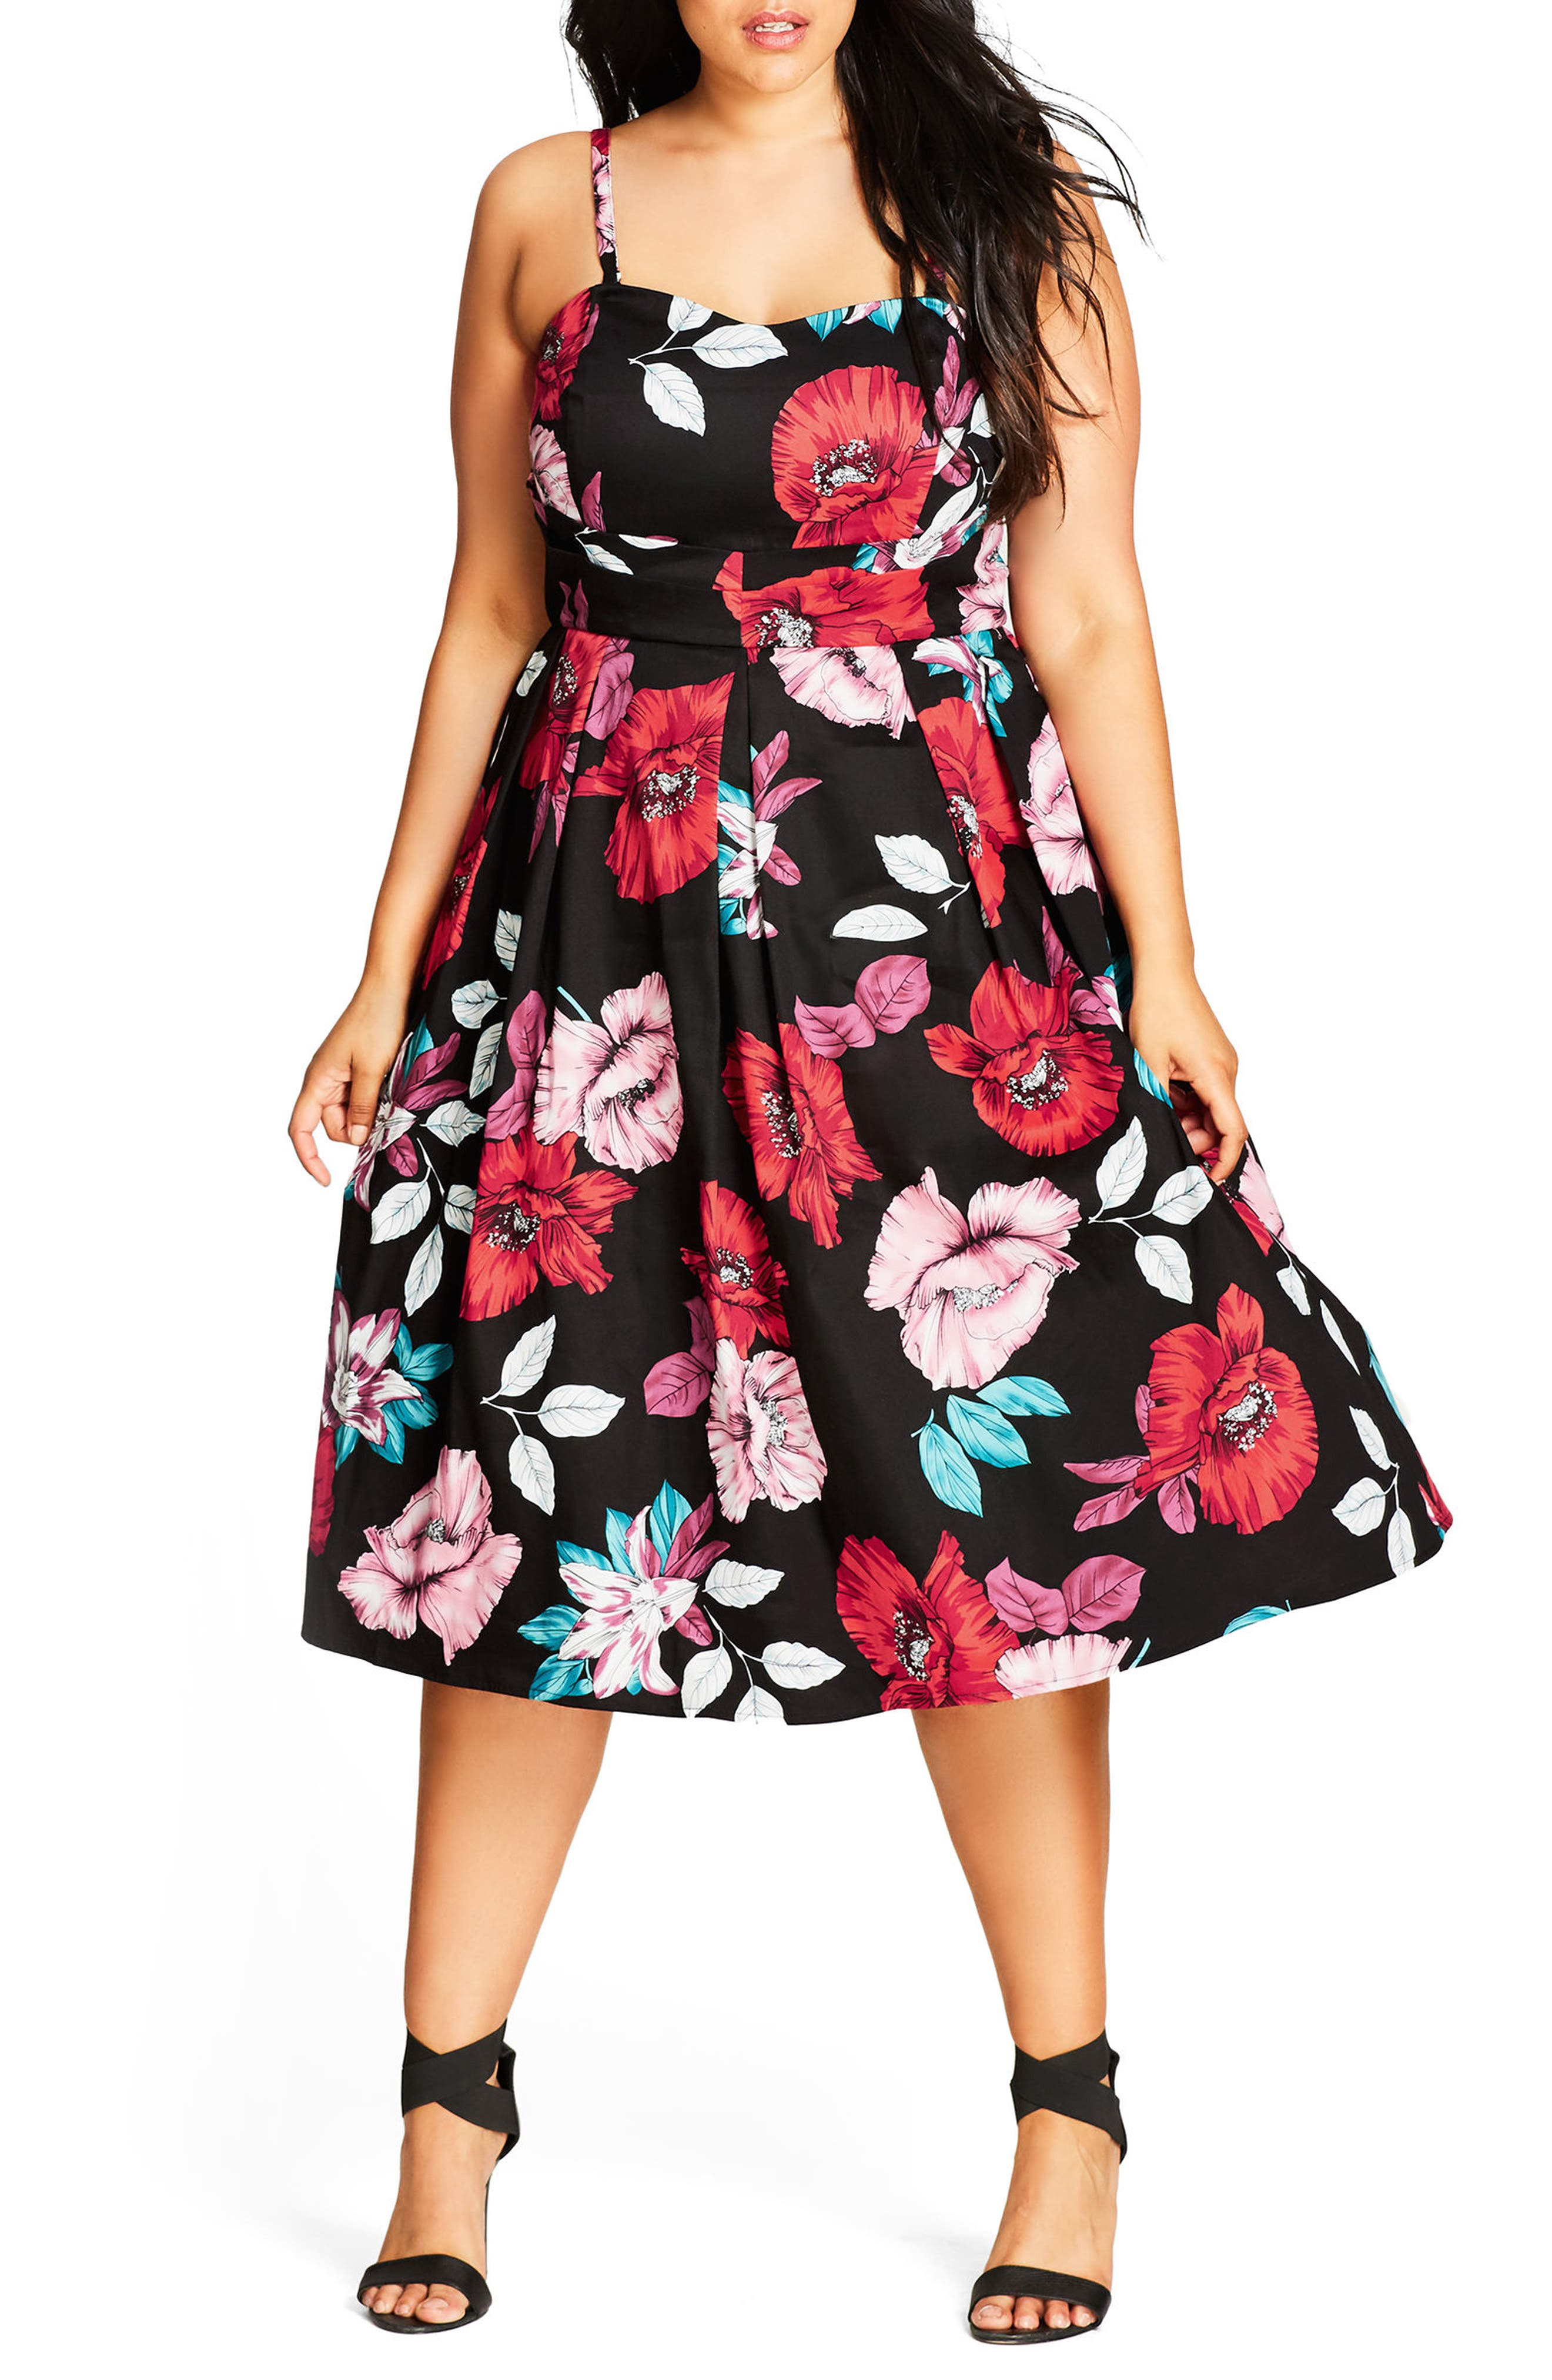 Alternate Image 1 Selected - City Chic Poppy Garden Fit & Flare Dress (Plus Size)